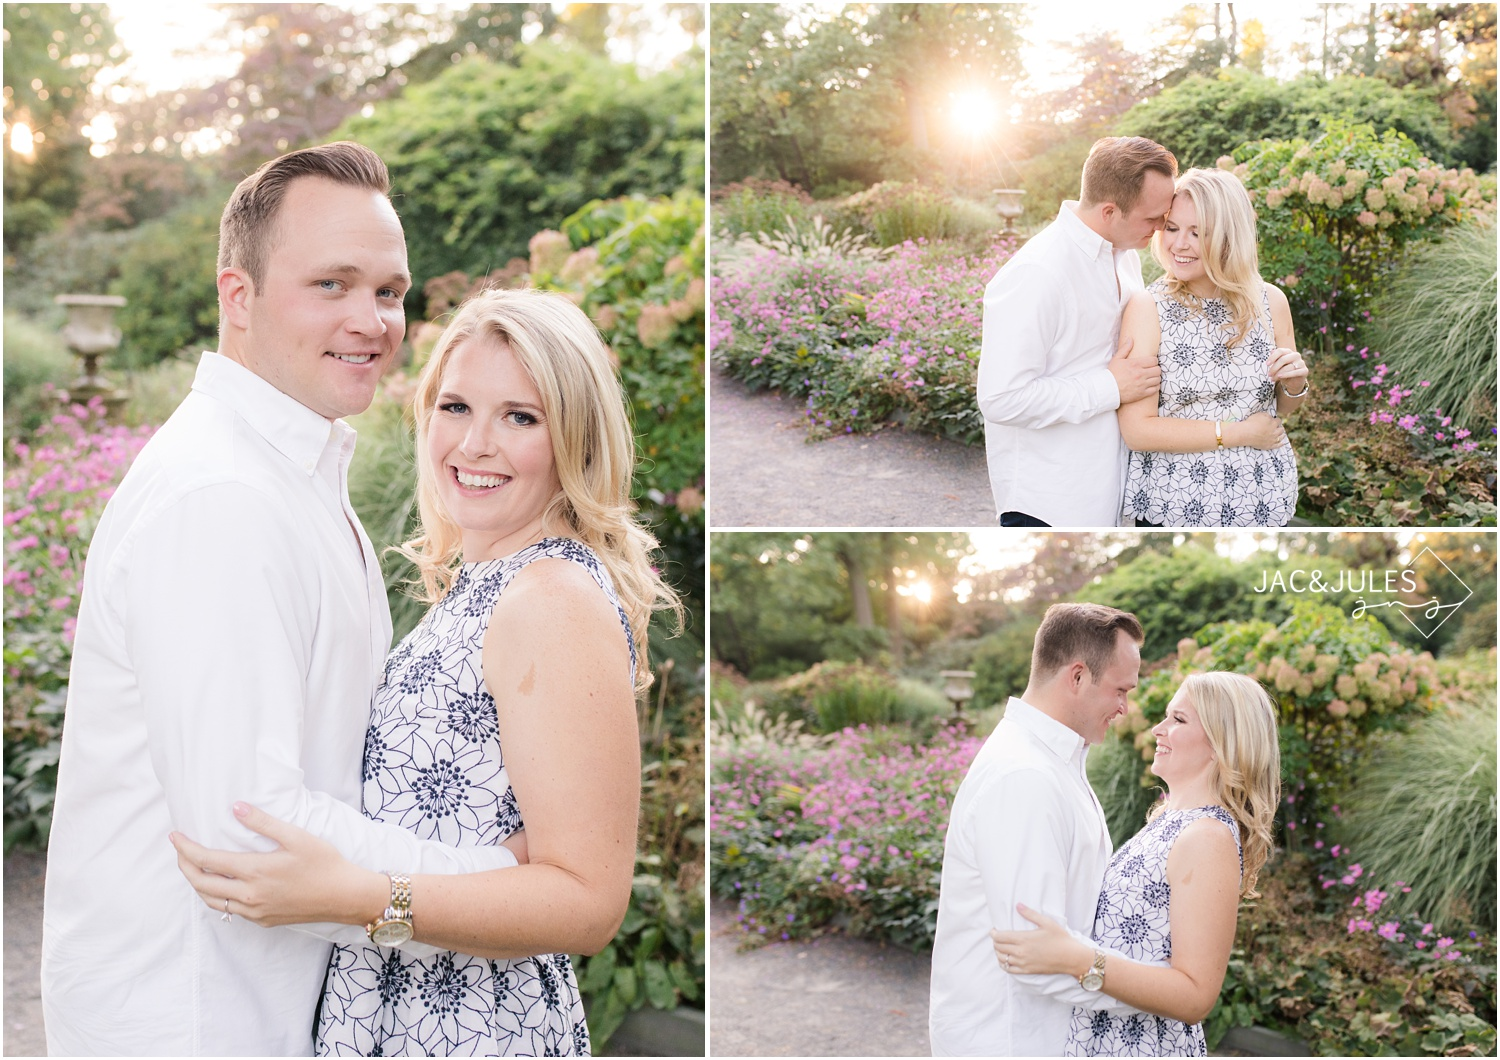 golden sunny Engagement photos at Van Vleck House and Gardens in Montclair, NJ.